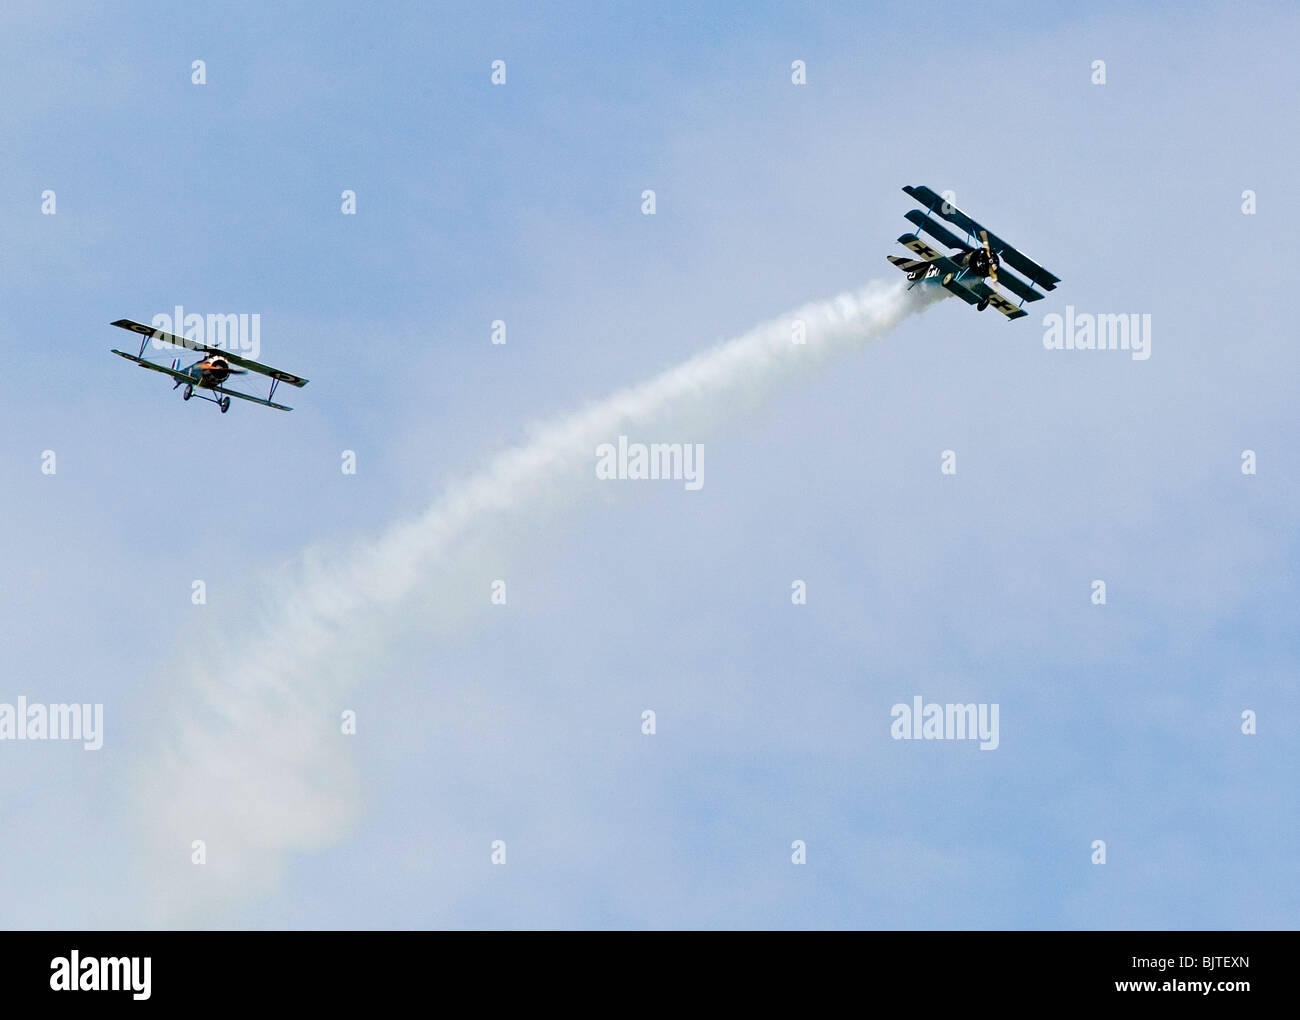 World War 1 dog fight reancctment at air show in UK Sopwith Cannel and Fokker Triplane. - Stock Image